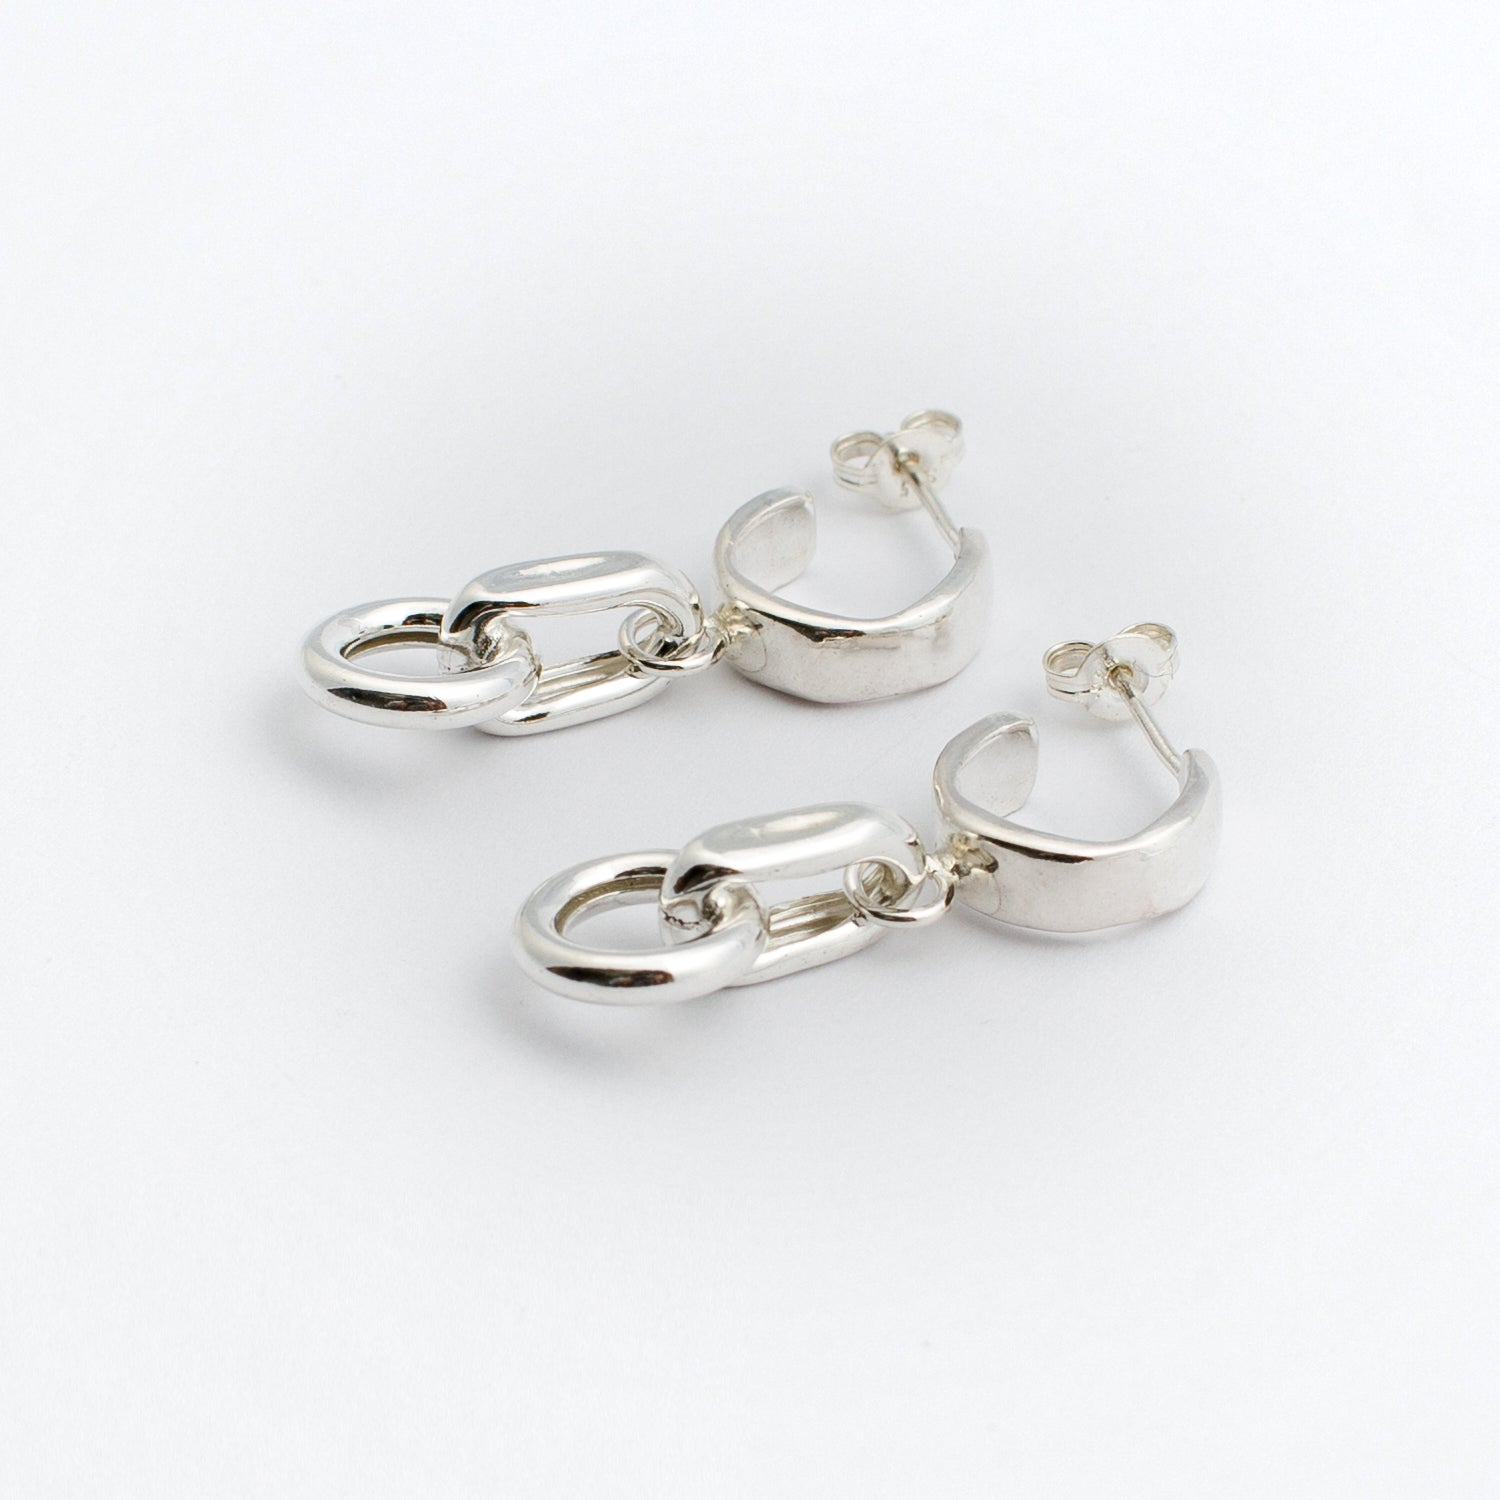 Dream Chain Earrings - Sterling Silver